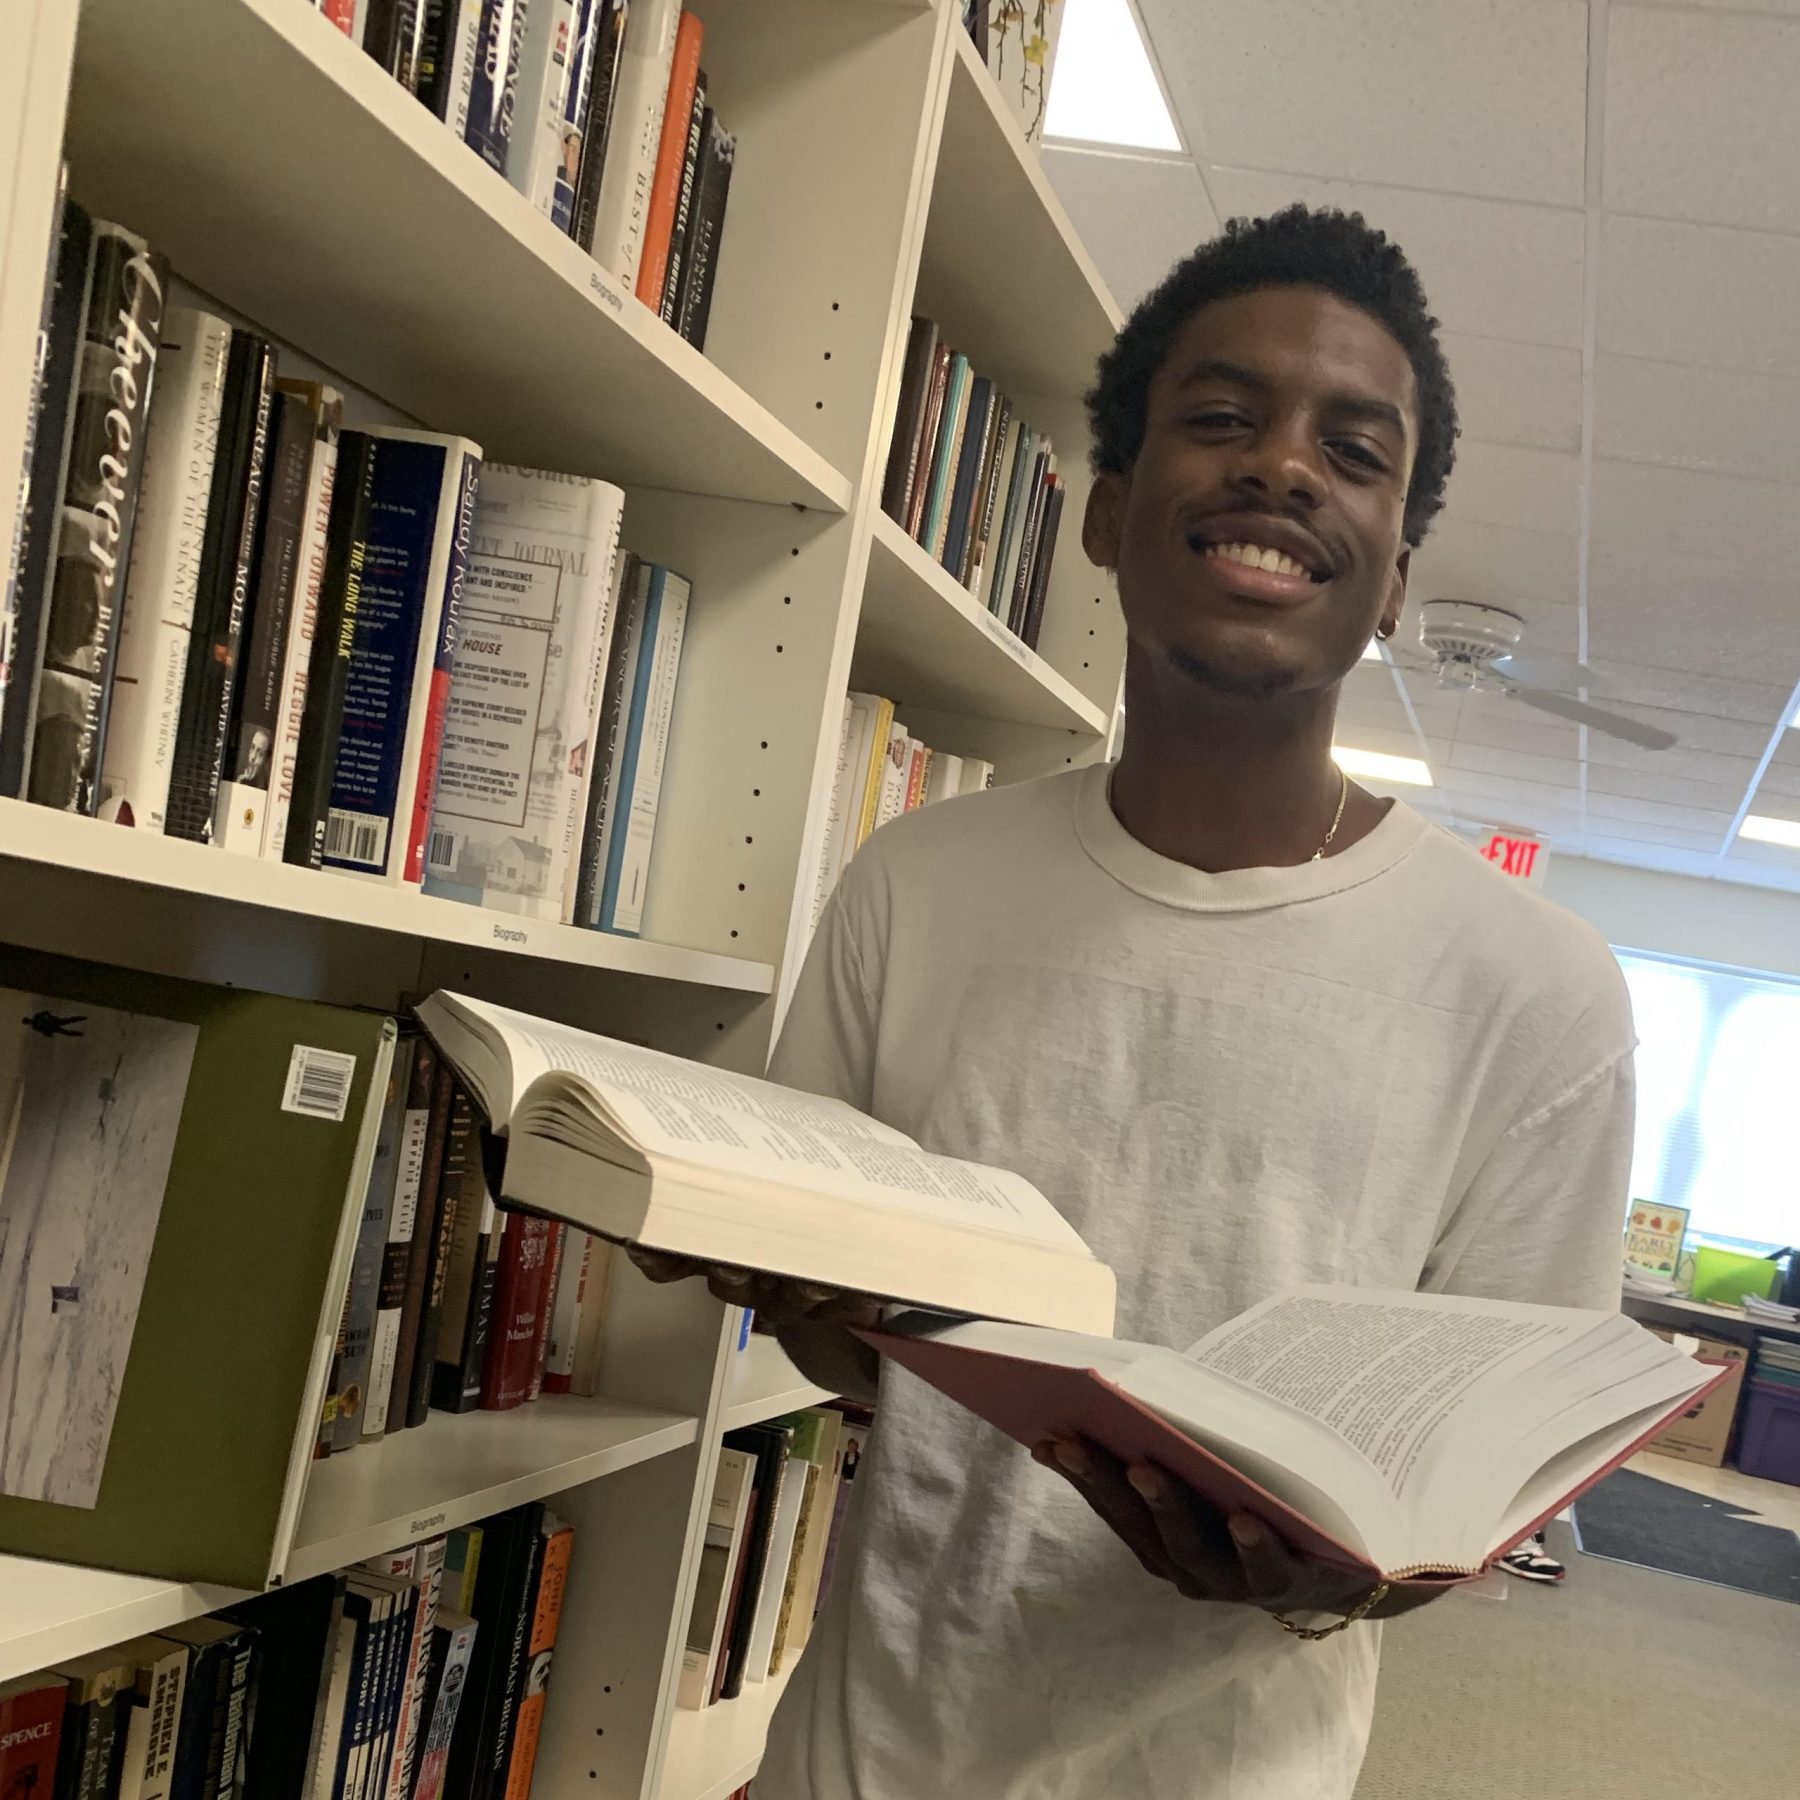 A student smiles holding two books.